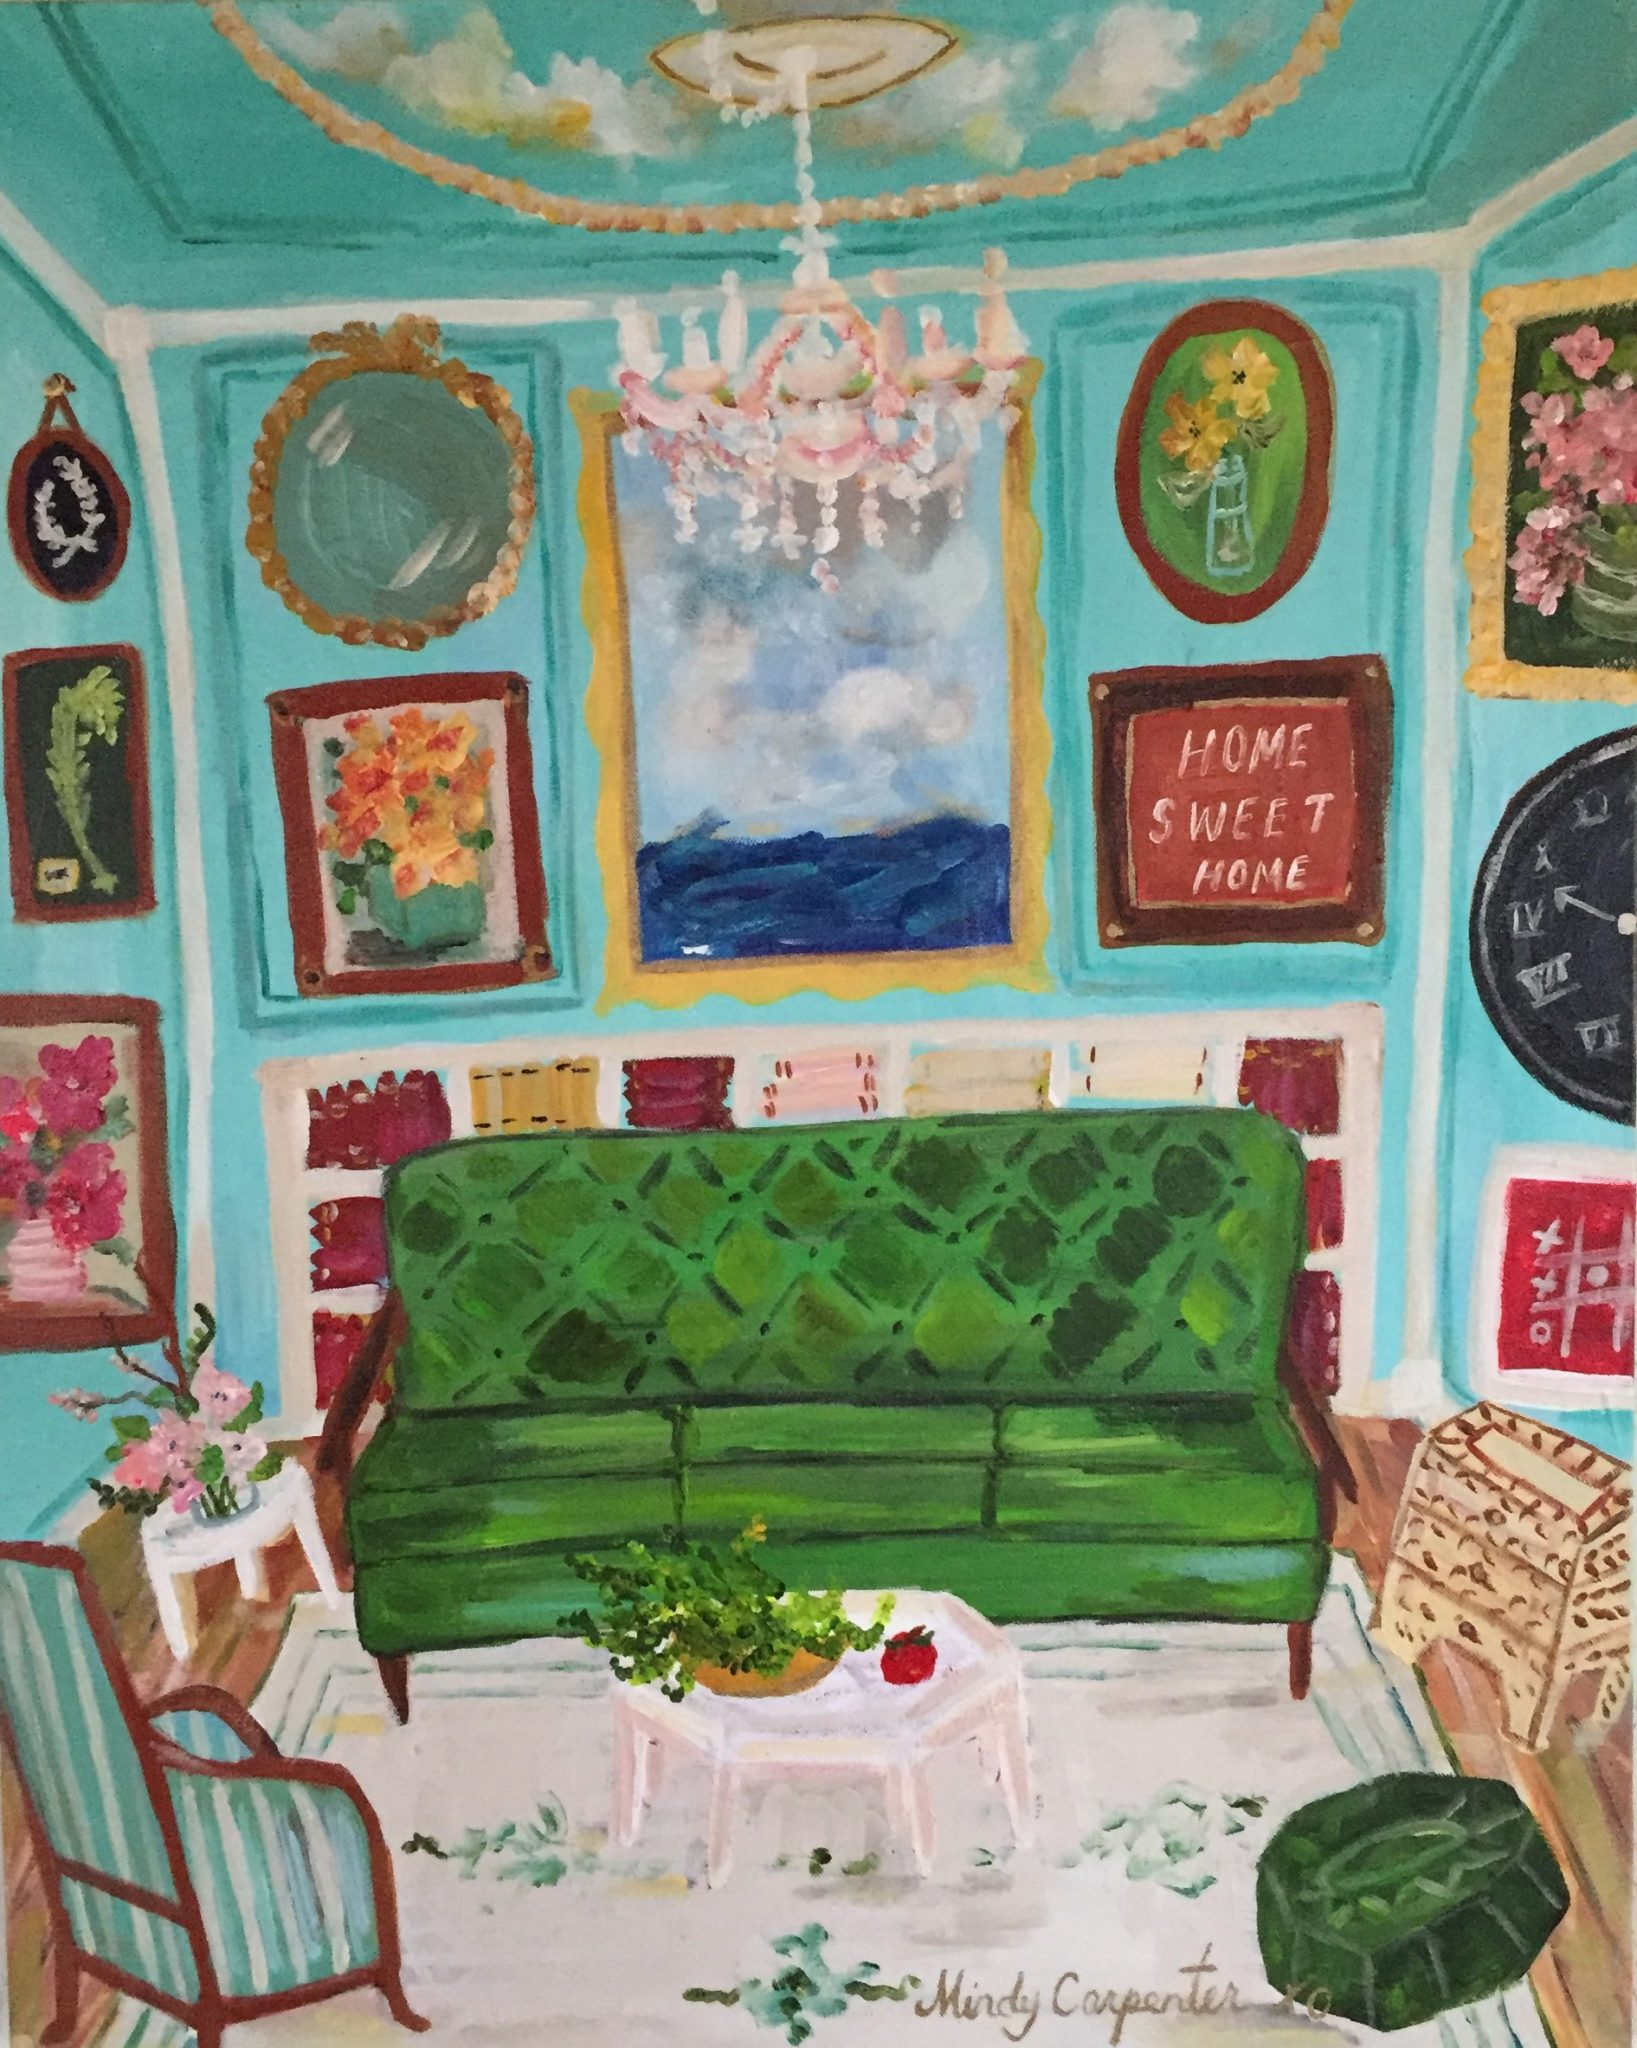 Home sweet home painting - Soar Welcomes Artist Mindy Carpenter Home Sweet Home Original Acrylic Painting By Mindy